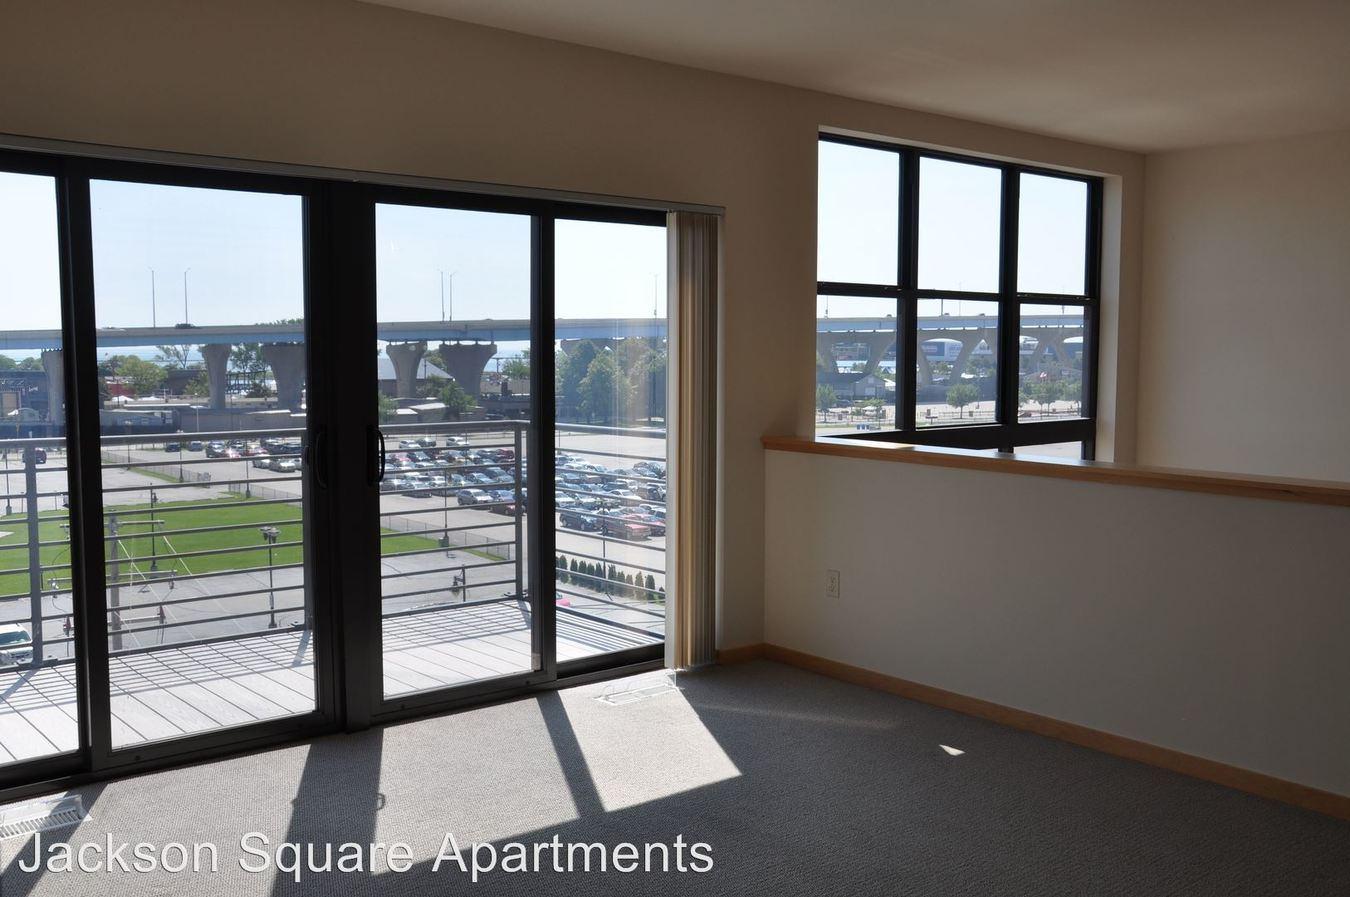 2 Bedrooms 2 Bathrooms Apartment for rent at Jackson Square in Milwaukee, WI